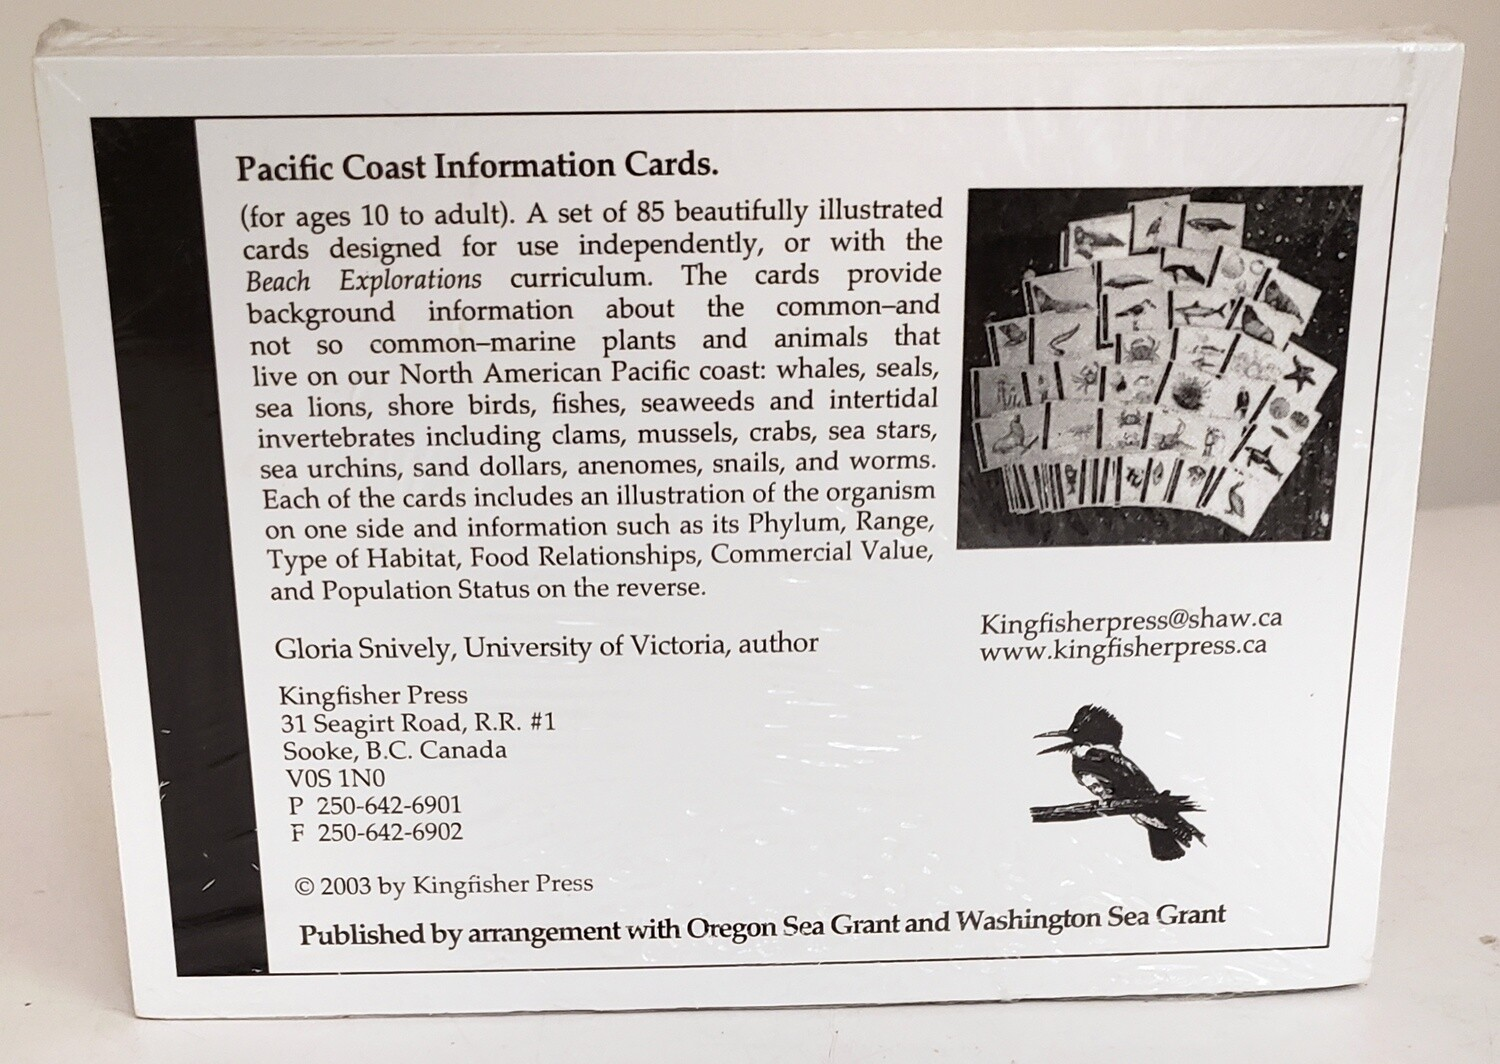 Pacific Coast Information Cards